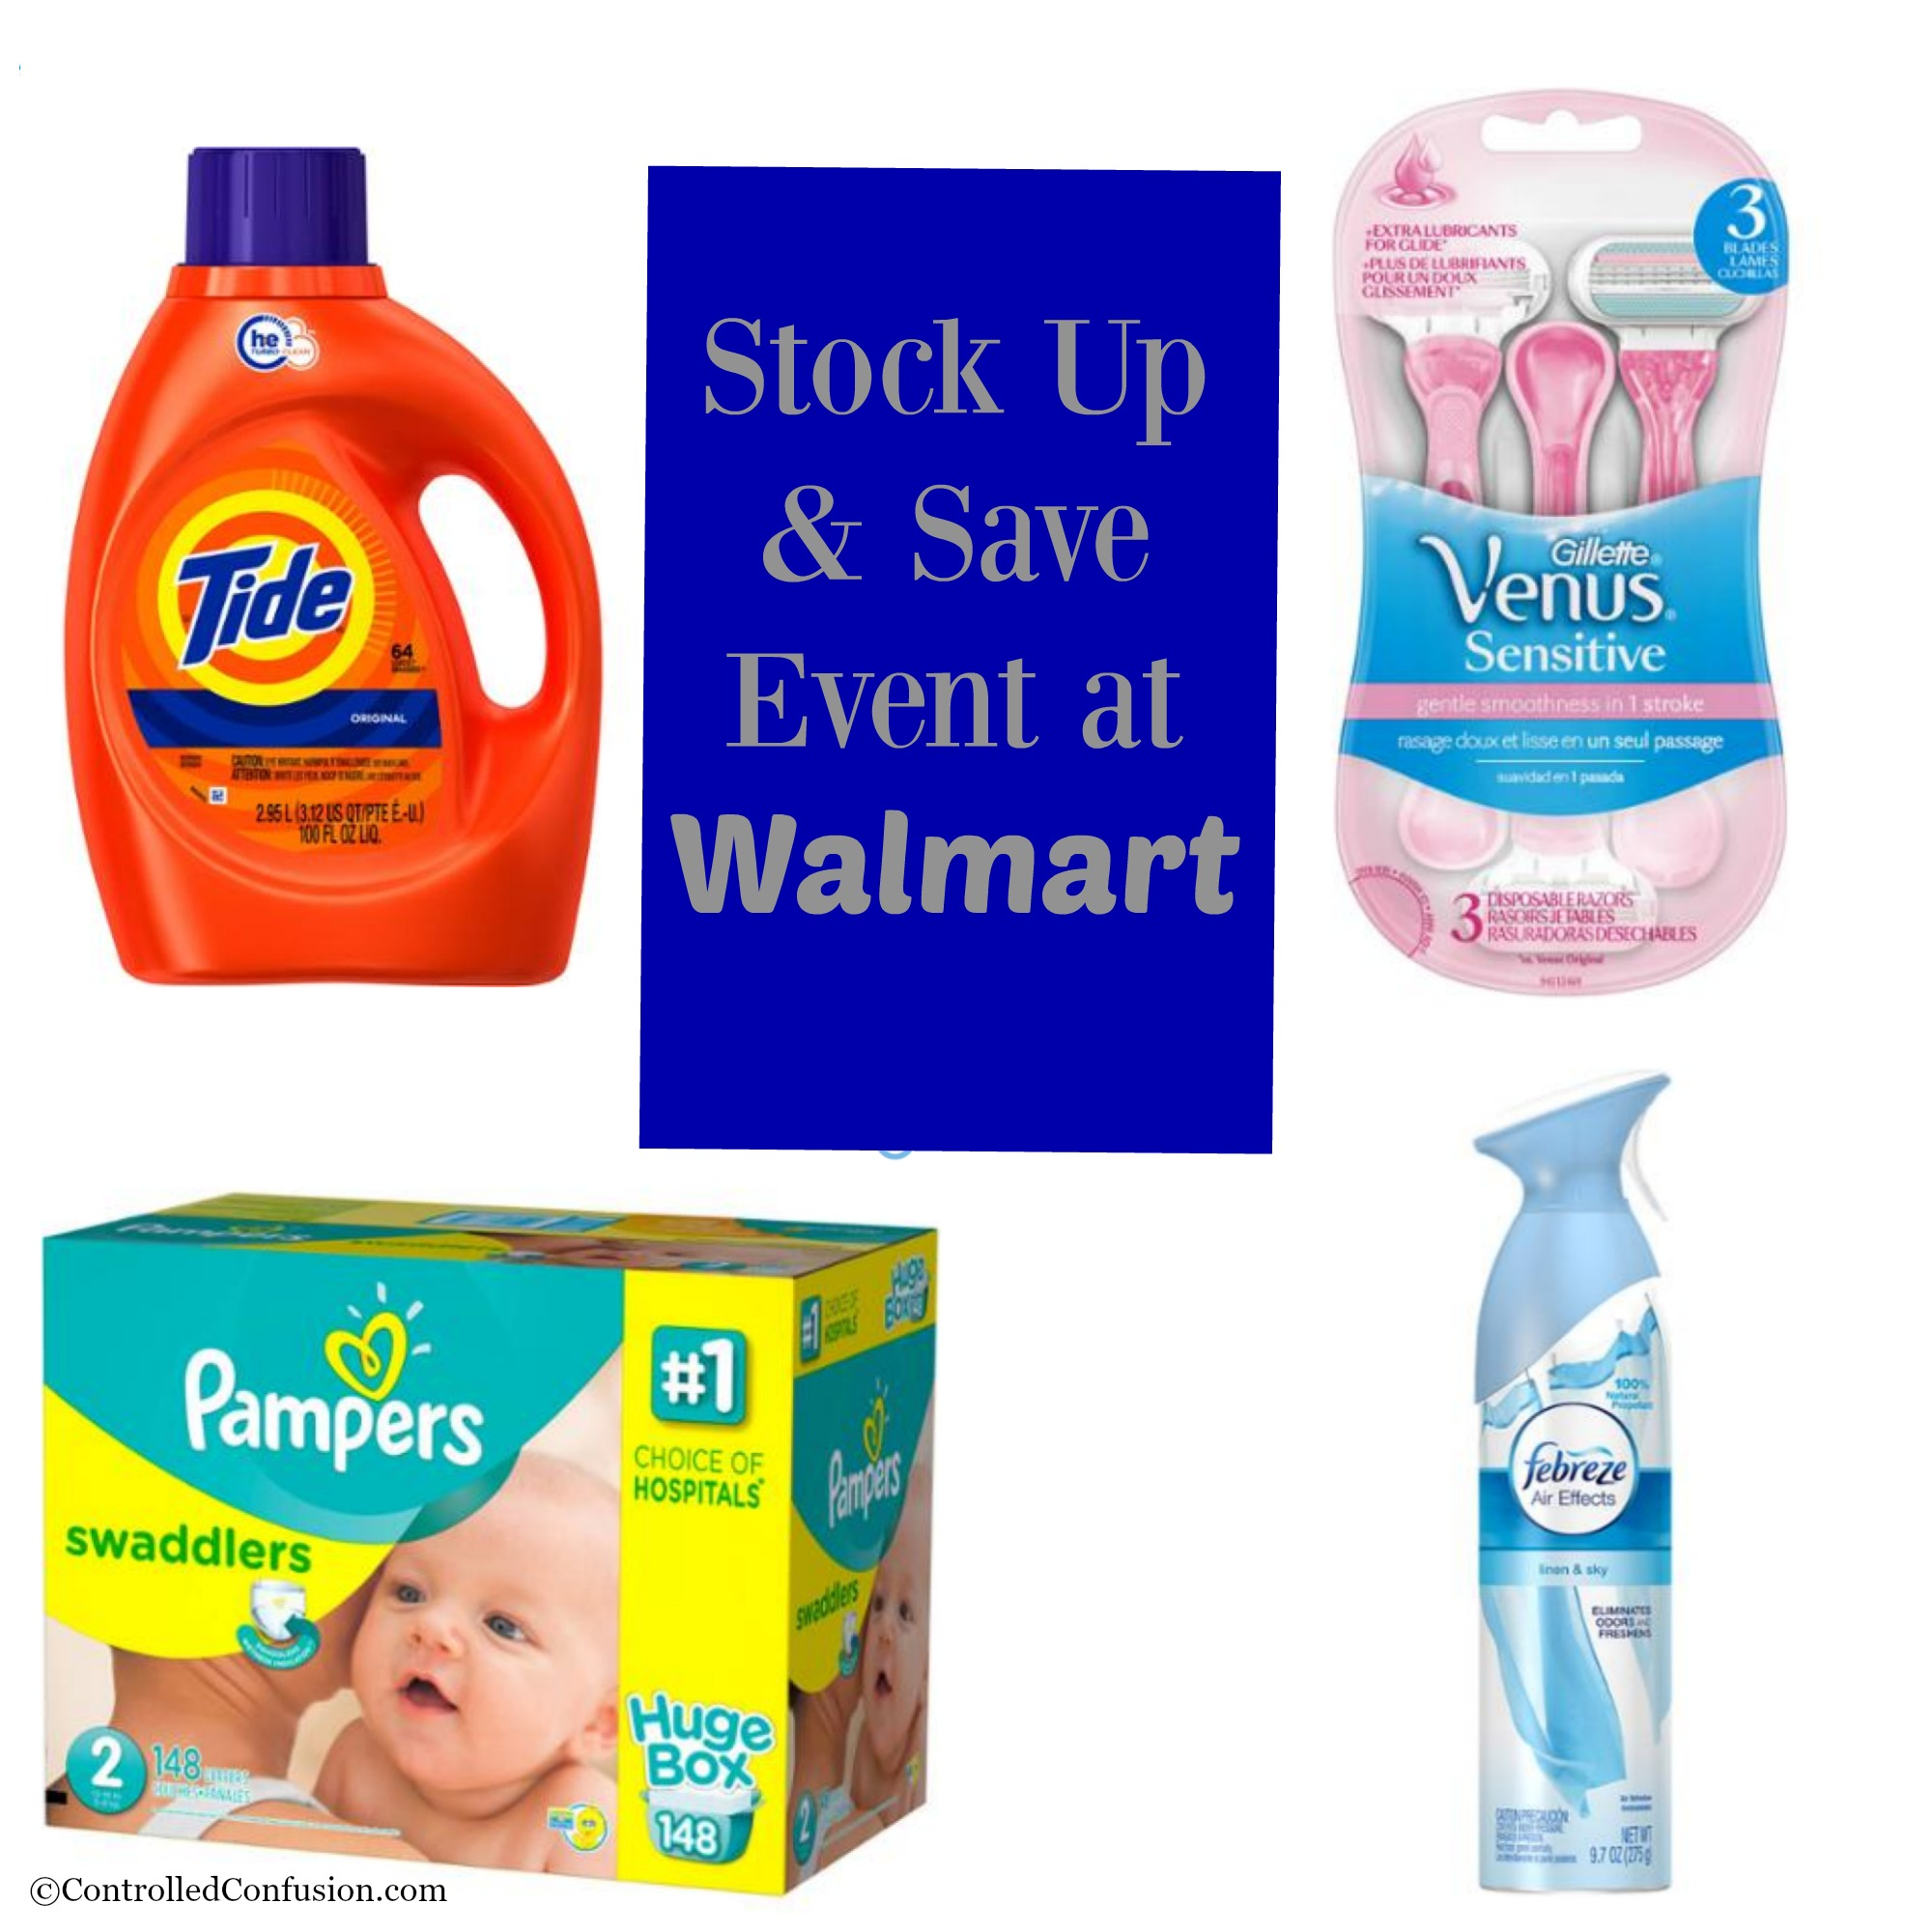 Get Ready for Spring at the Stock Up & Save Event at Walmart